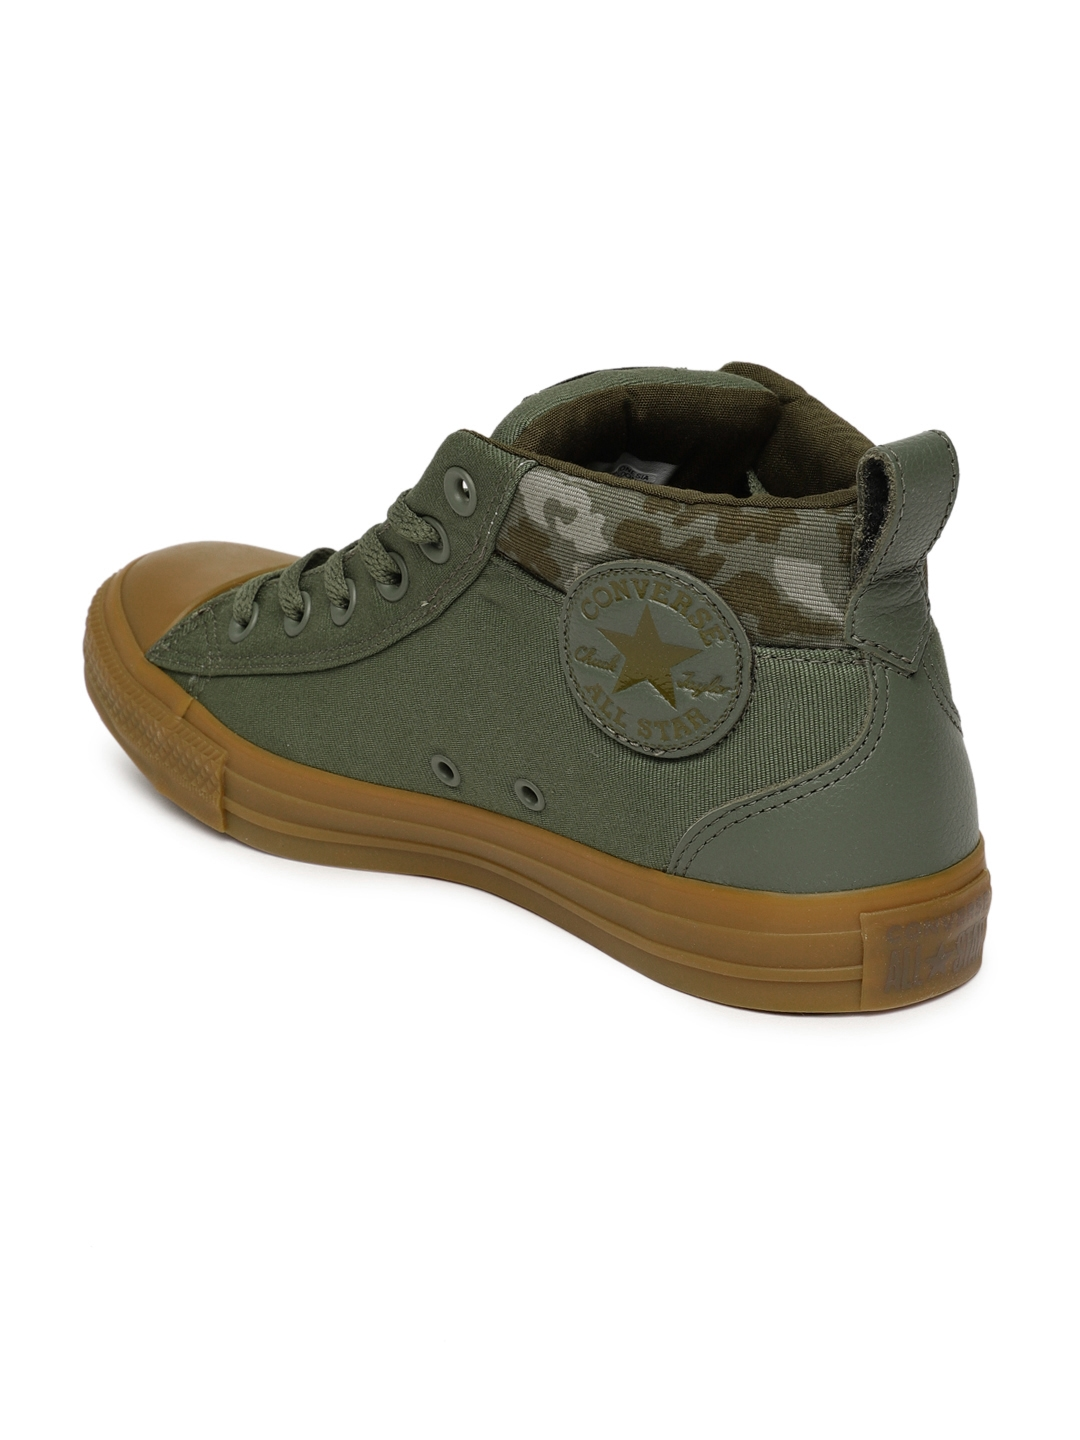 17a8c0c683b2 Buy Converse Unisex Olive Solid Canvas Mid Top Sneakers - Casual ...